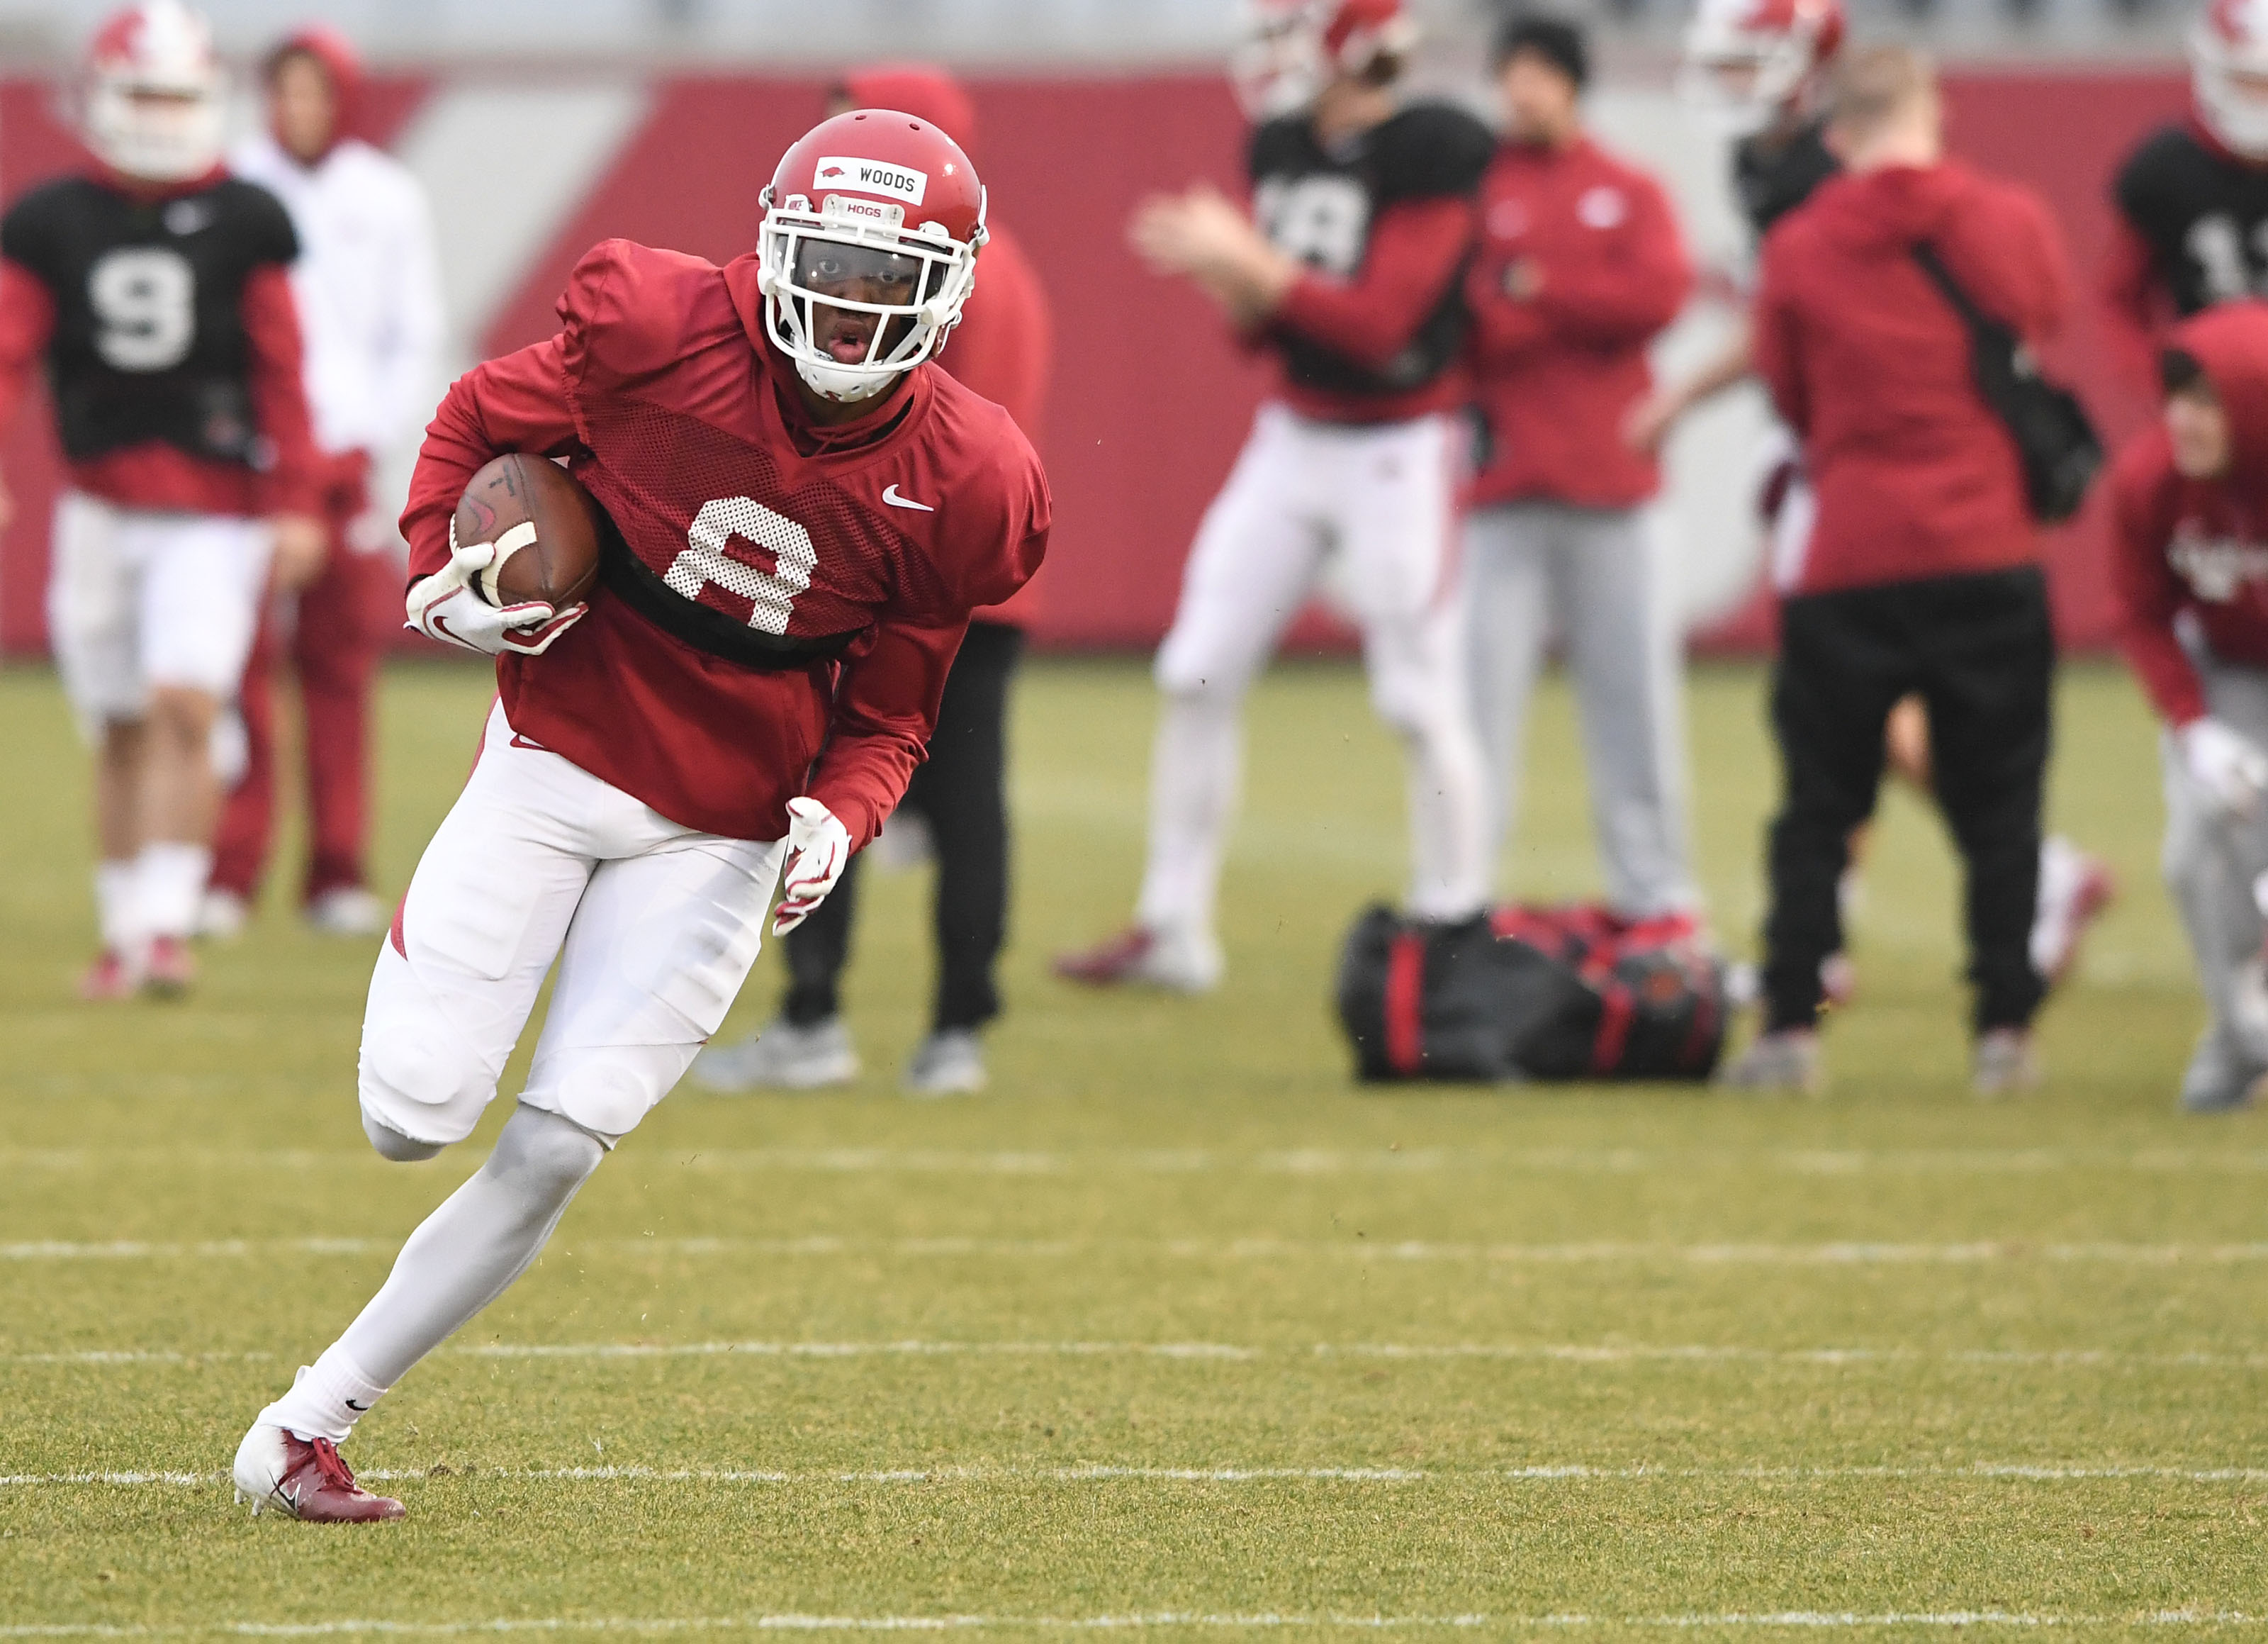 Receiver confident Hogs will be better